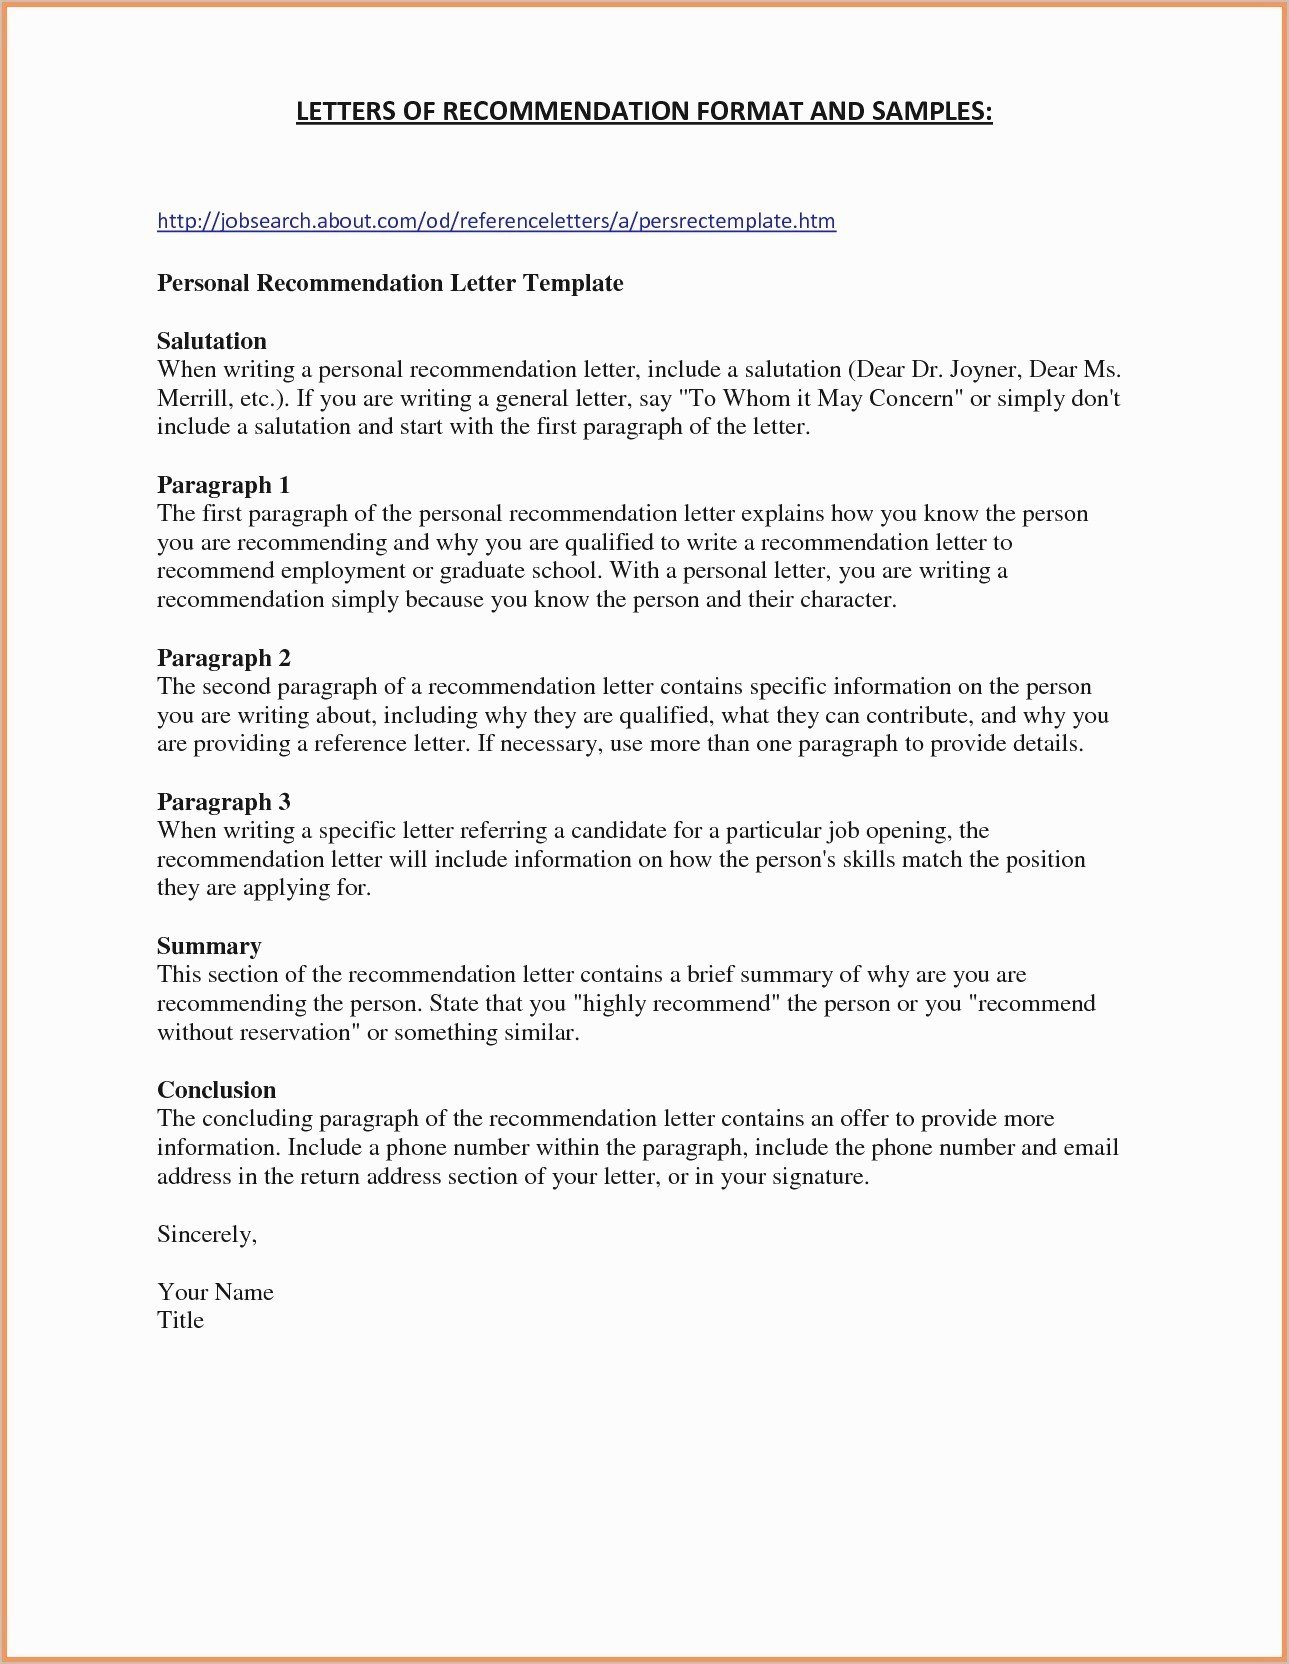 Sorority Recommendation Letter Template Awesome sorority Re Mendation Letter Template Collection